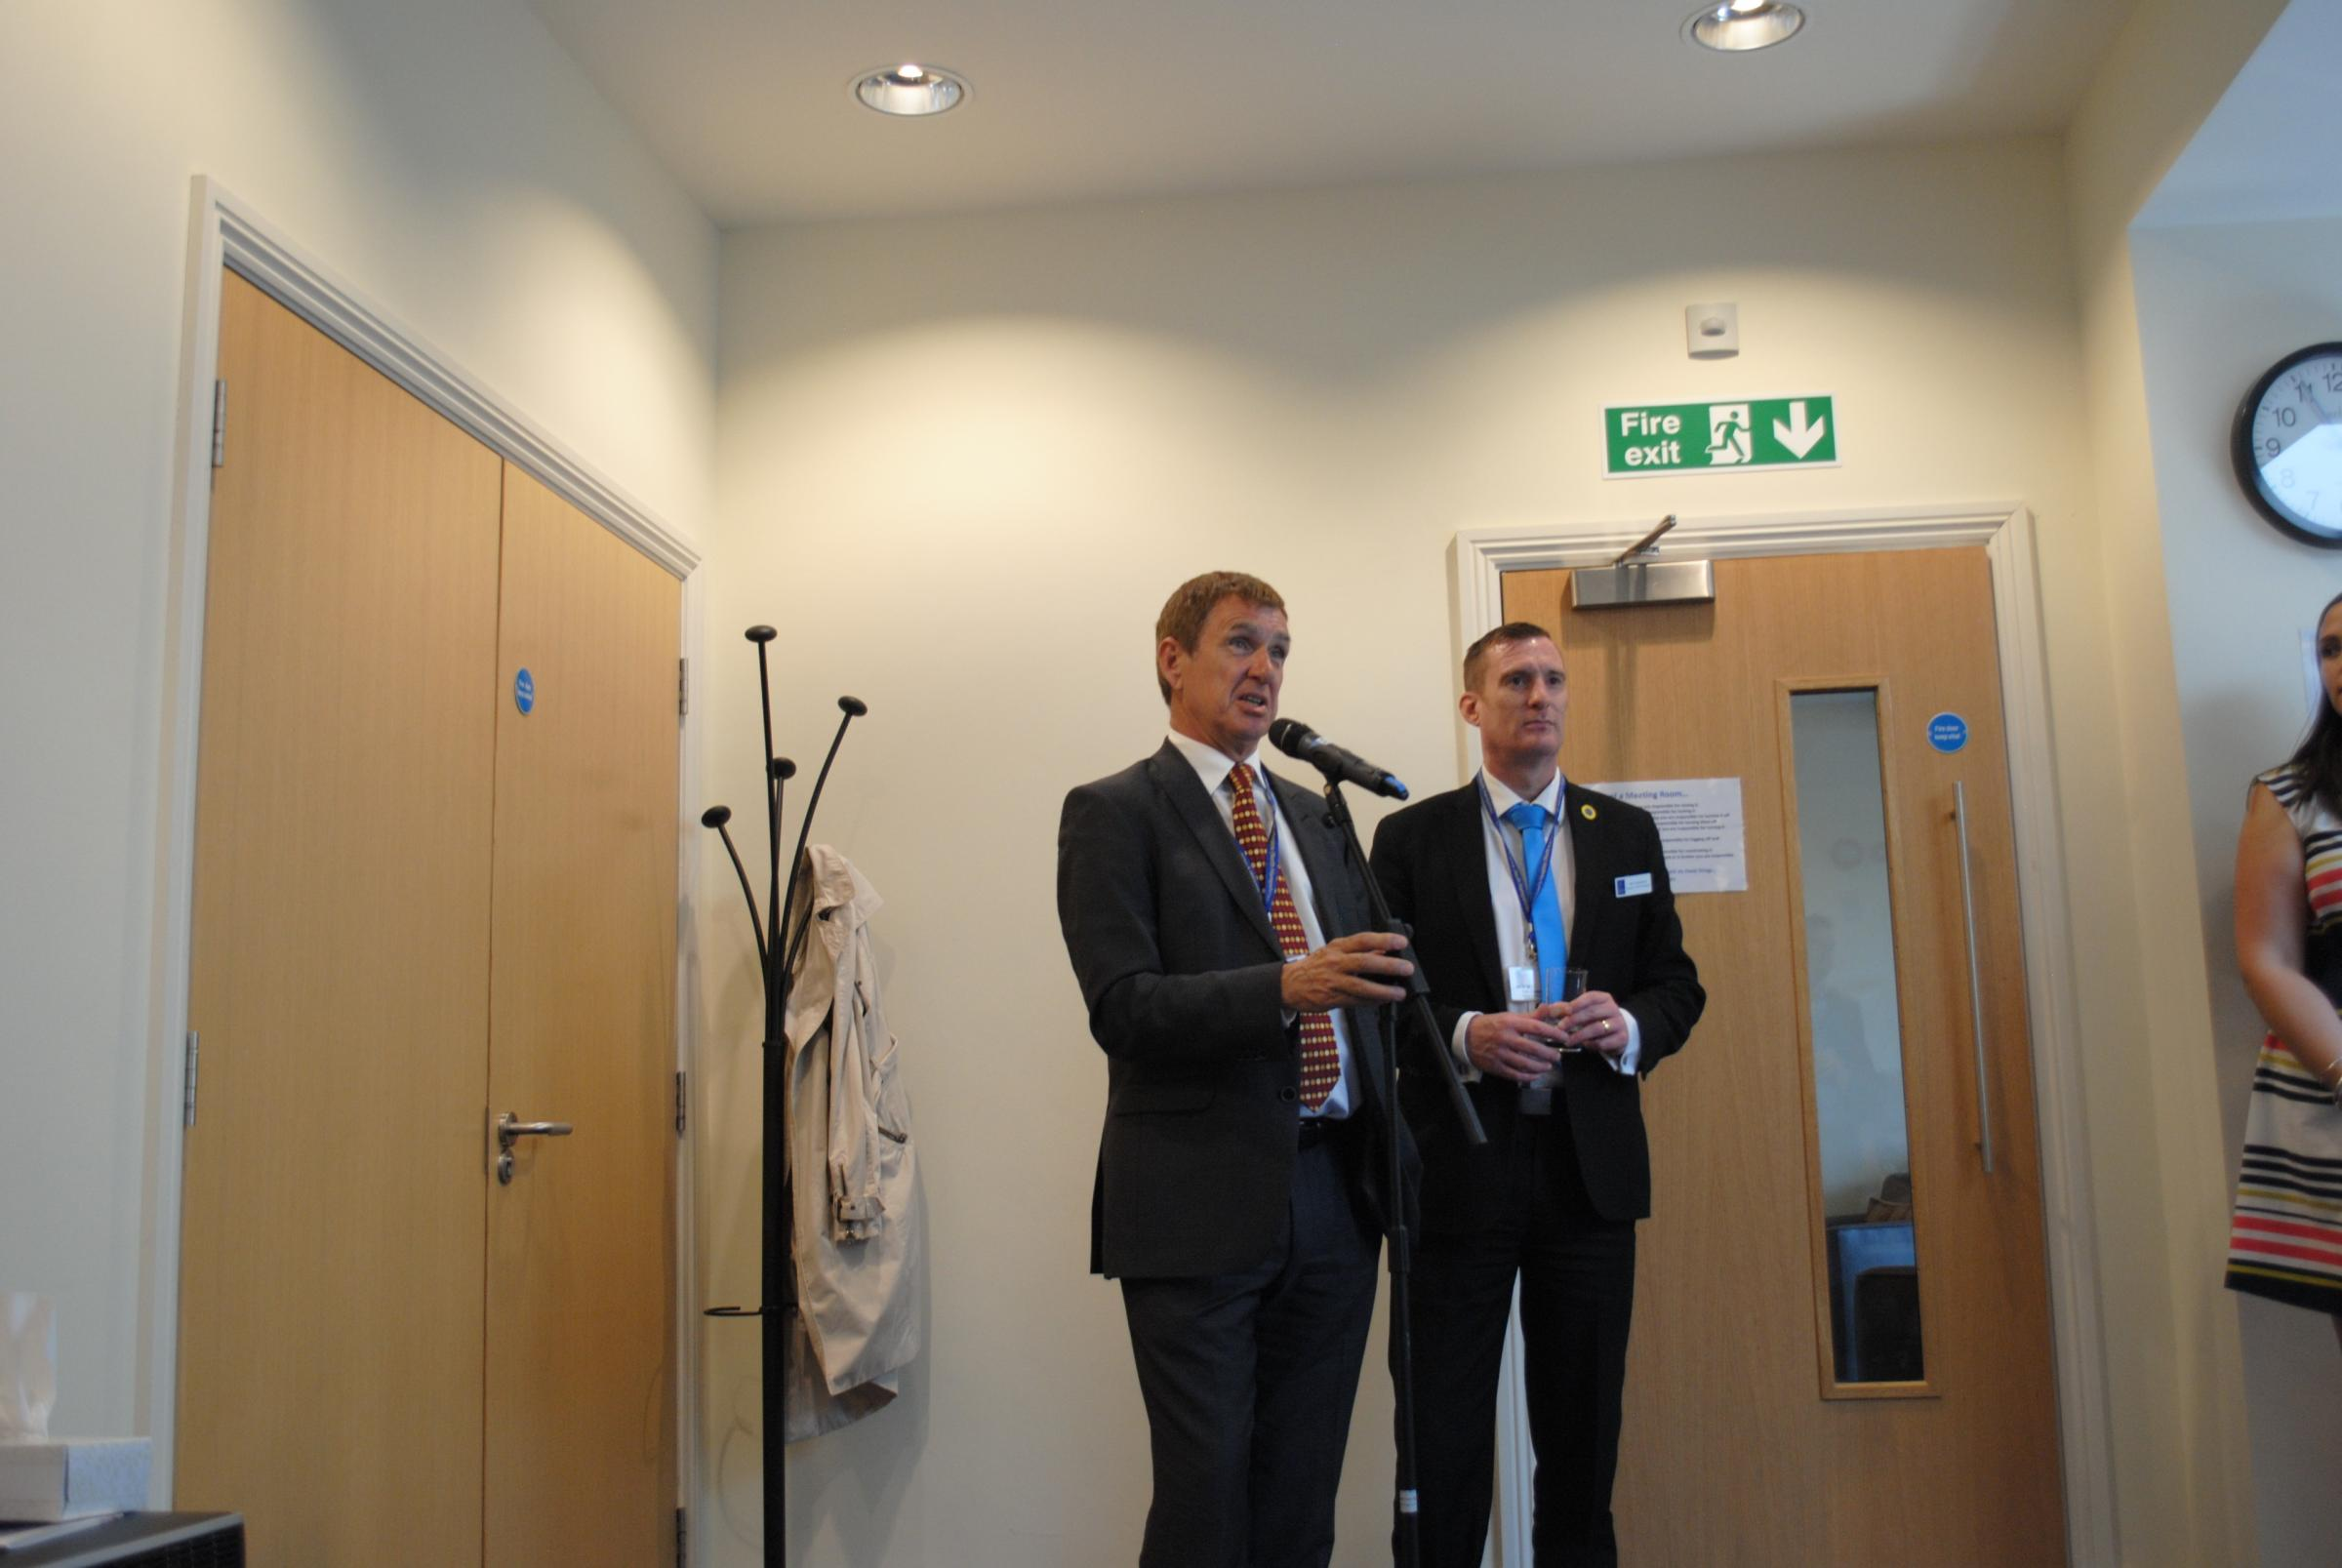 Hospice chairman Andrew Finney speaks at the event with Iain Cameron, deputy chief executive